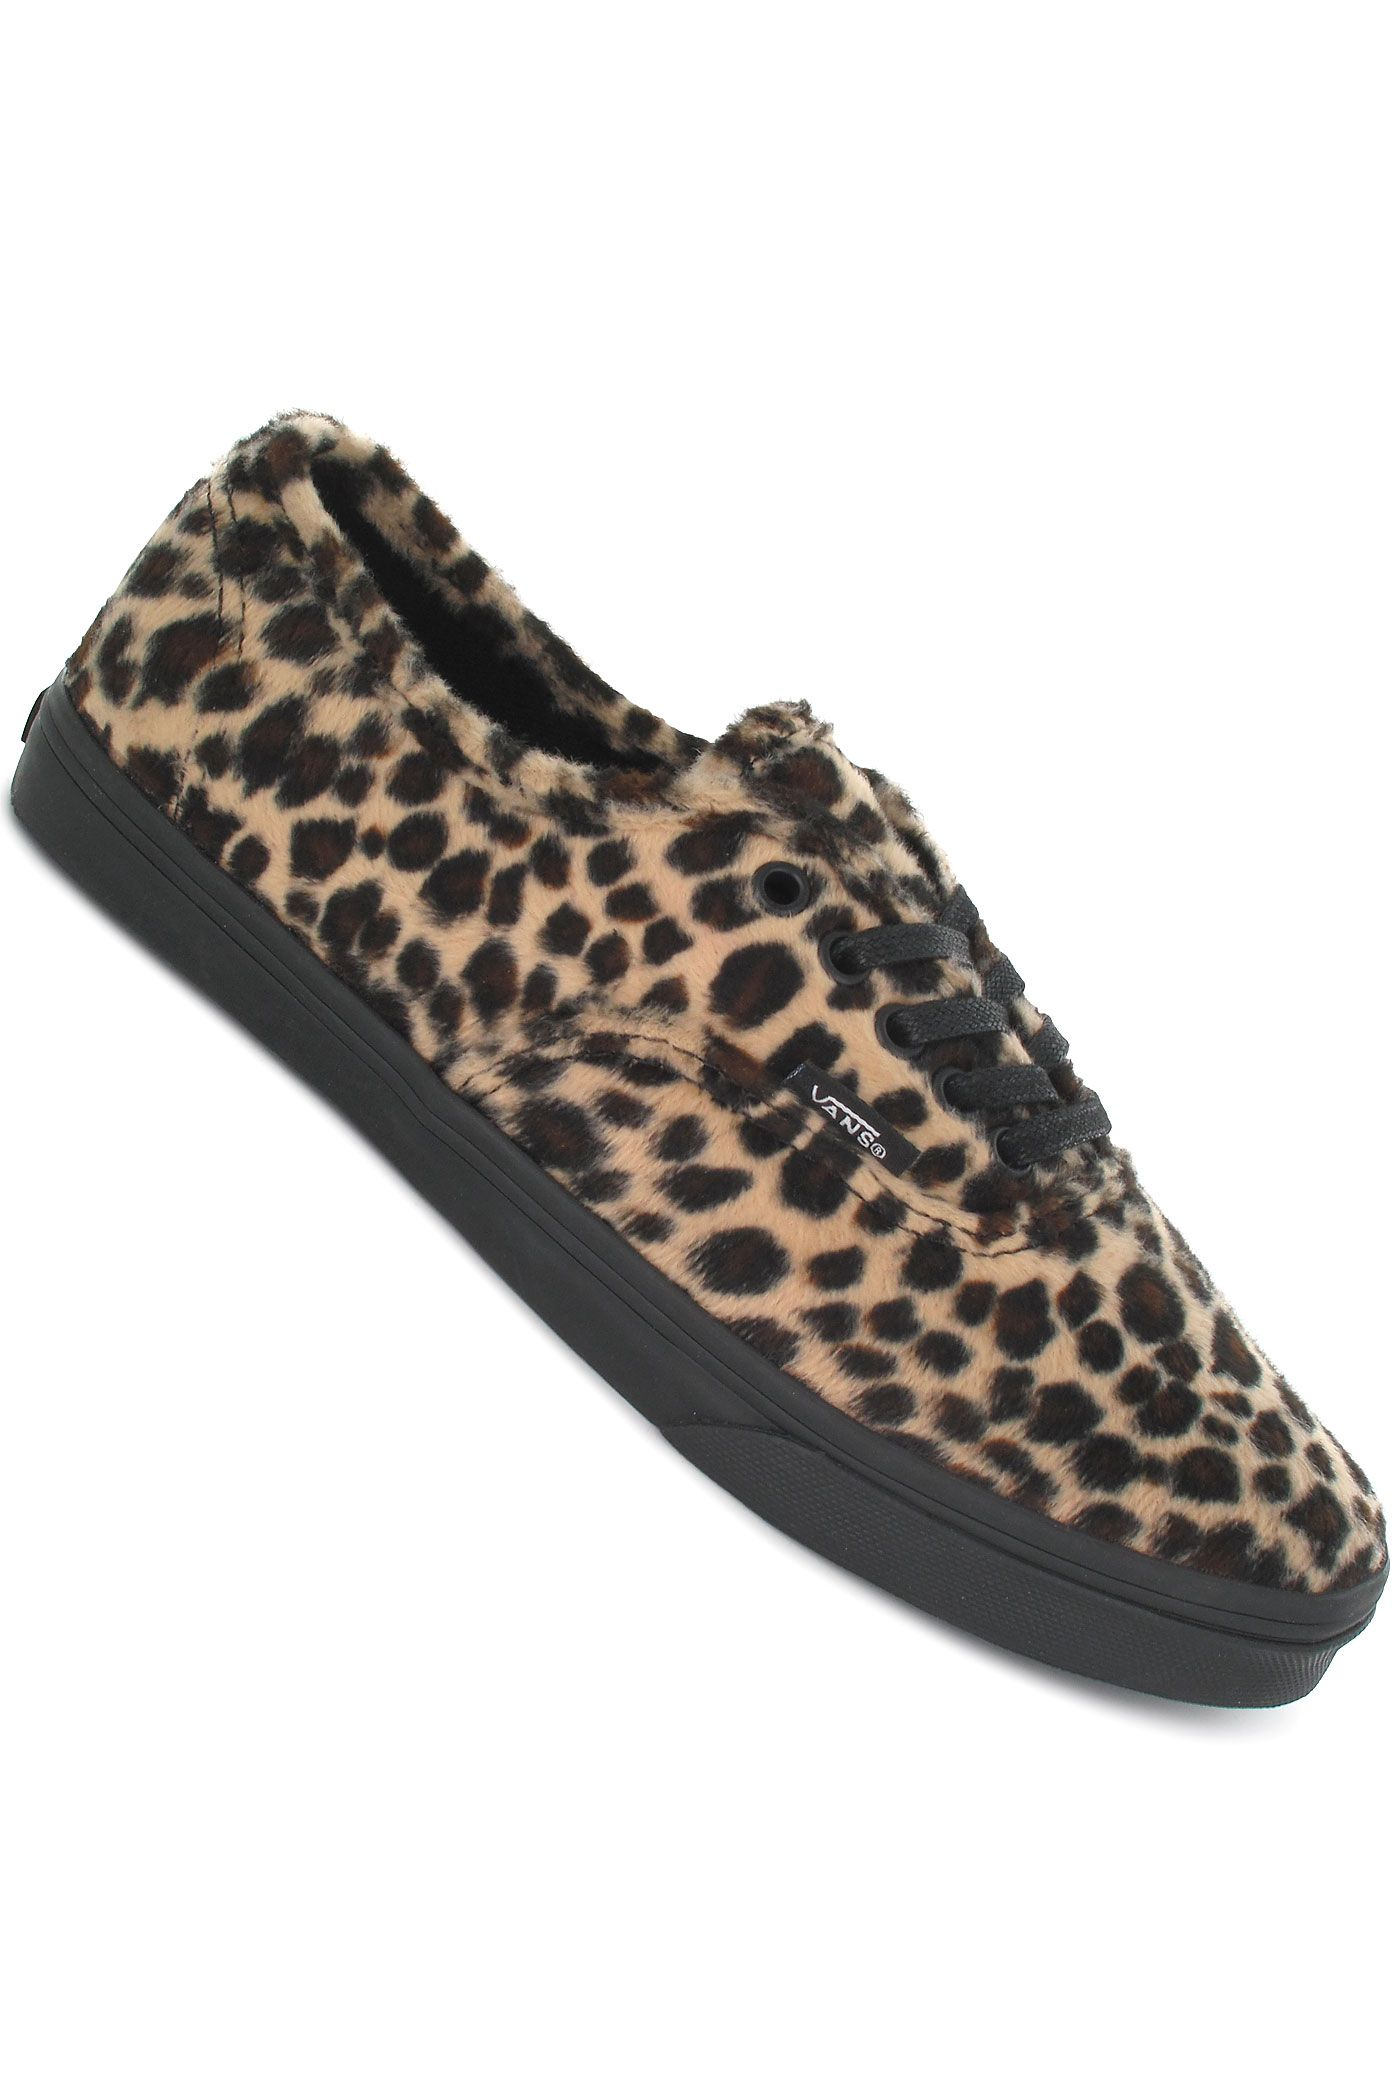 Vans Authentic Lo Pro Schuh girls (furry leopard tan black) kaufen bei  skatedeluxe 20d3744ed